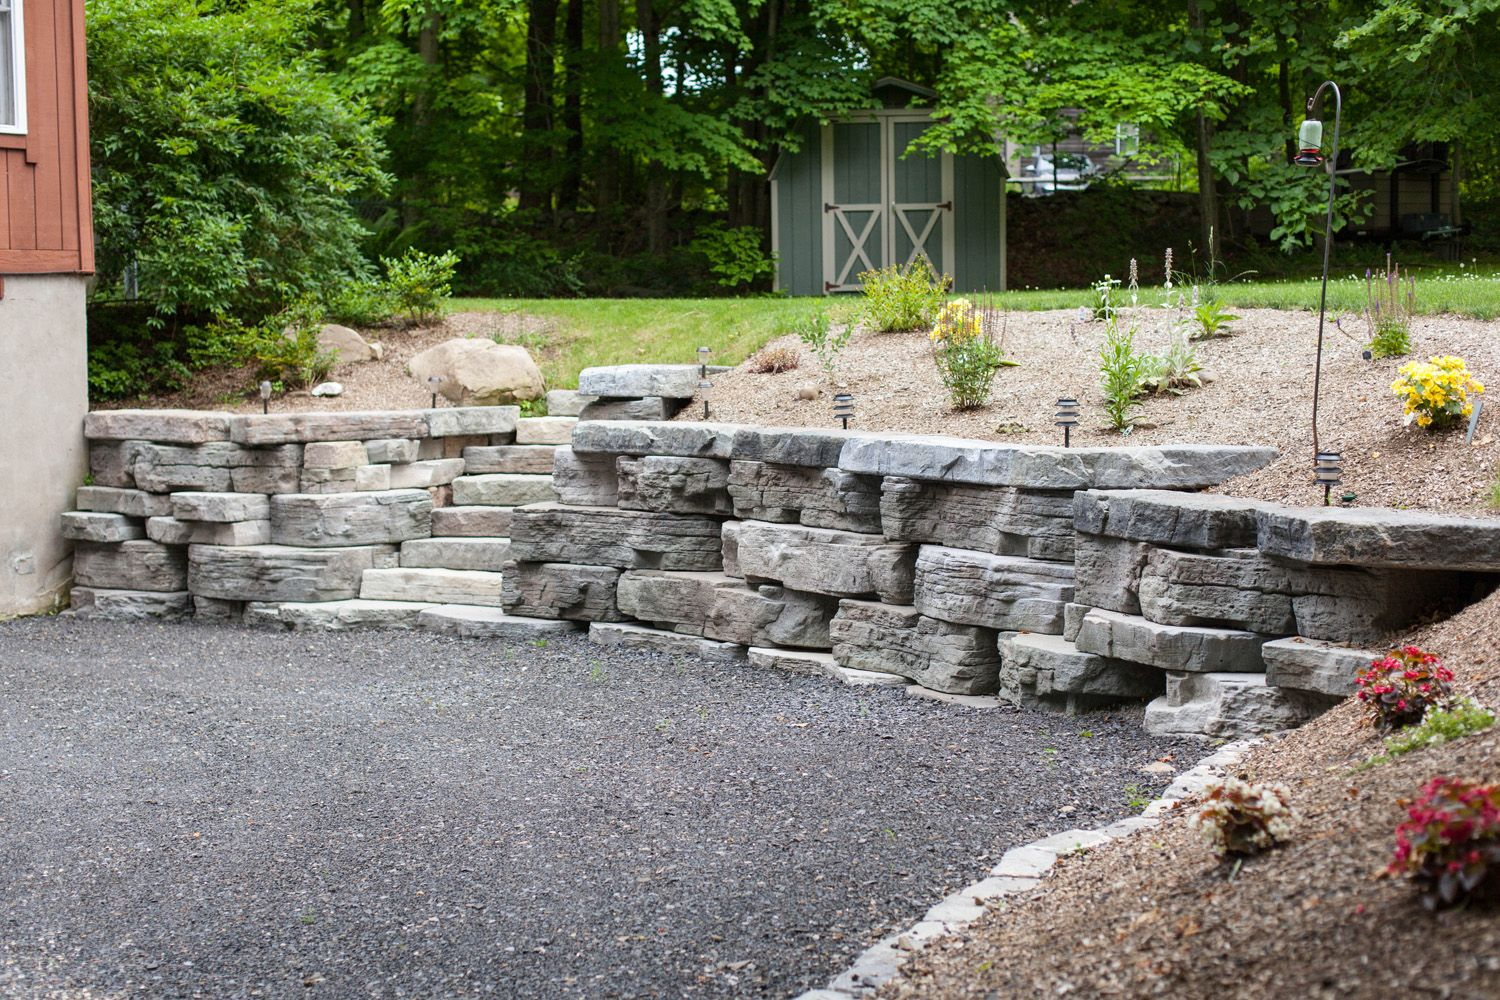 Rosetta Outcropping Retaining Wall And Steps In Highland Landscaping Retaining Walls Backyard Landscaping Backyard Ideas For Small Yards